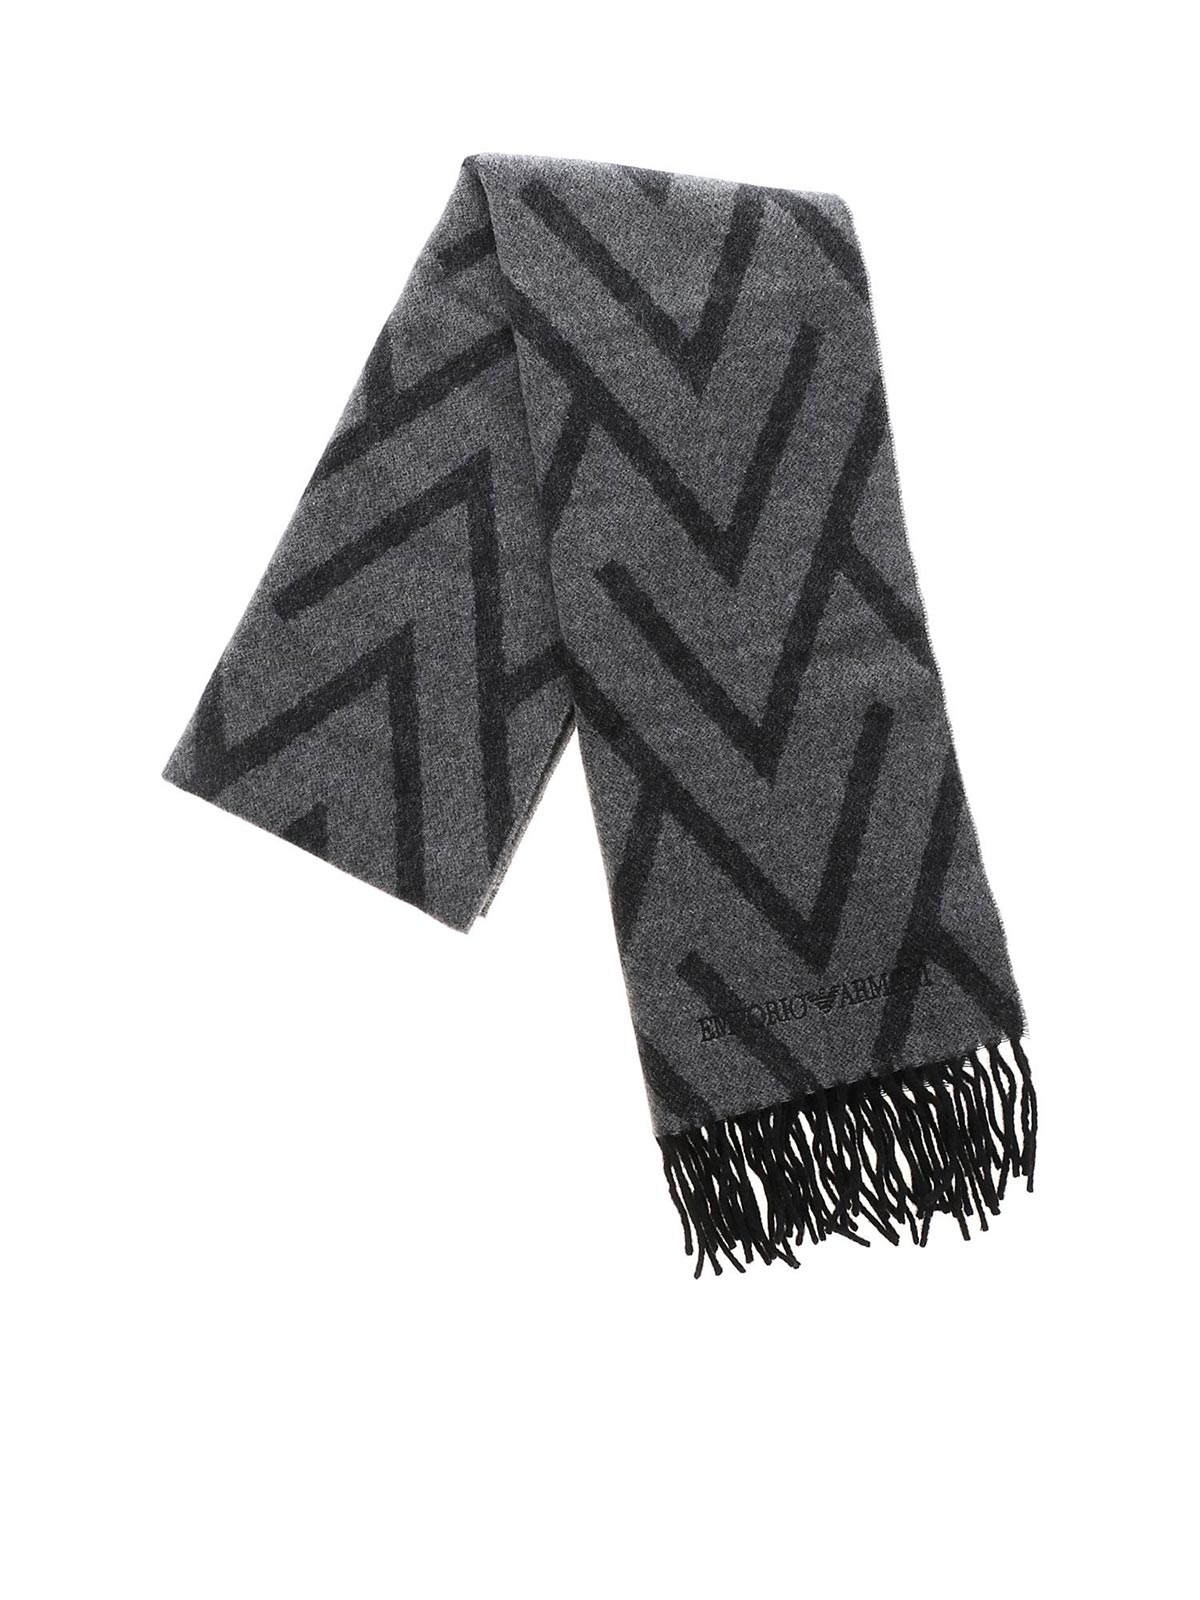 71c02aa31 EMPORIO ARMANI Men's Cashmere Scarf Grey/Black | 6250709A396 | Botta ...